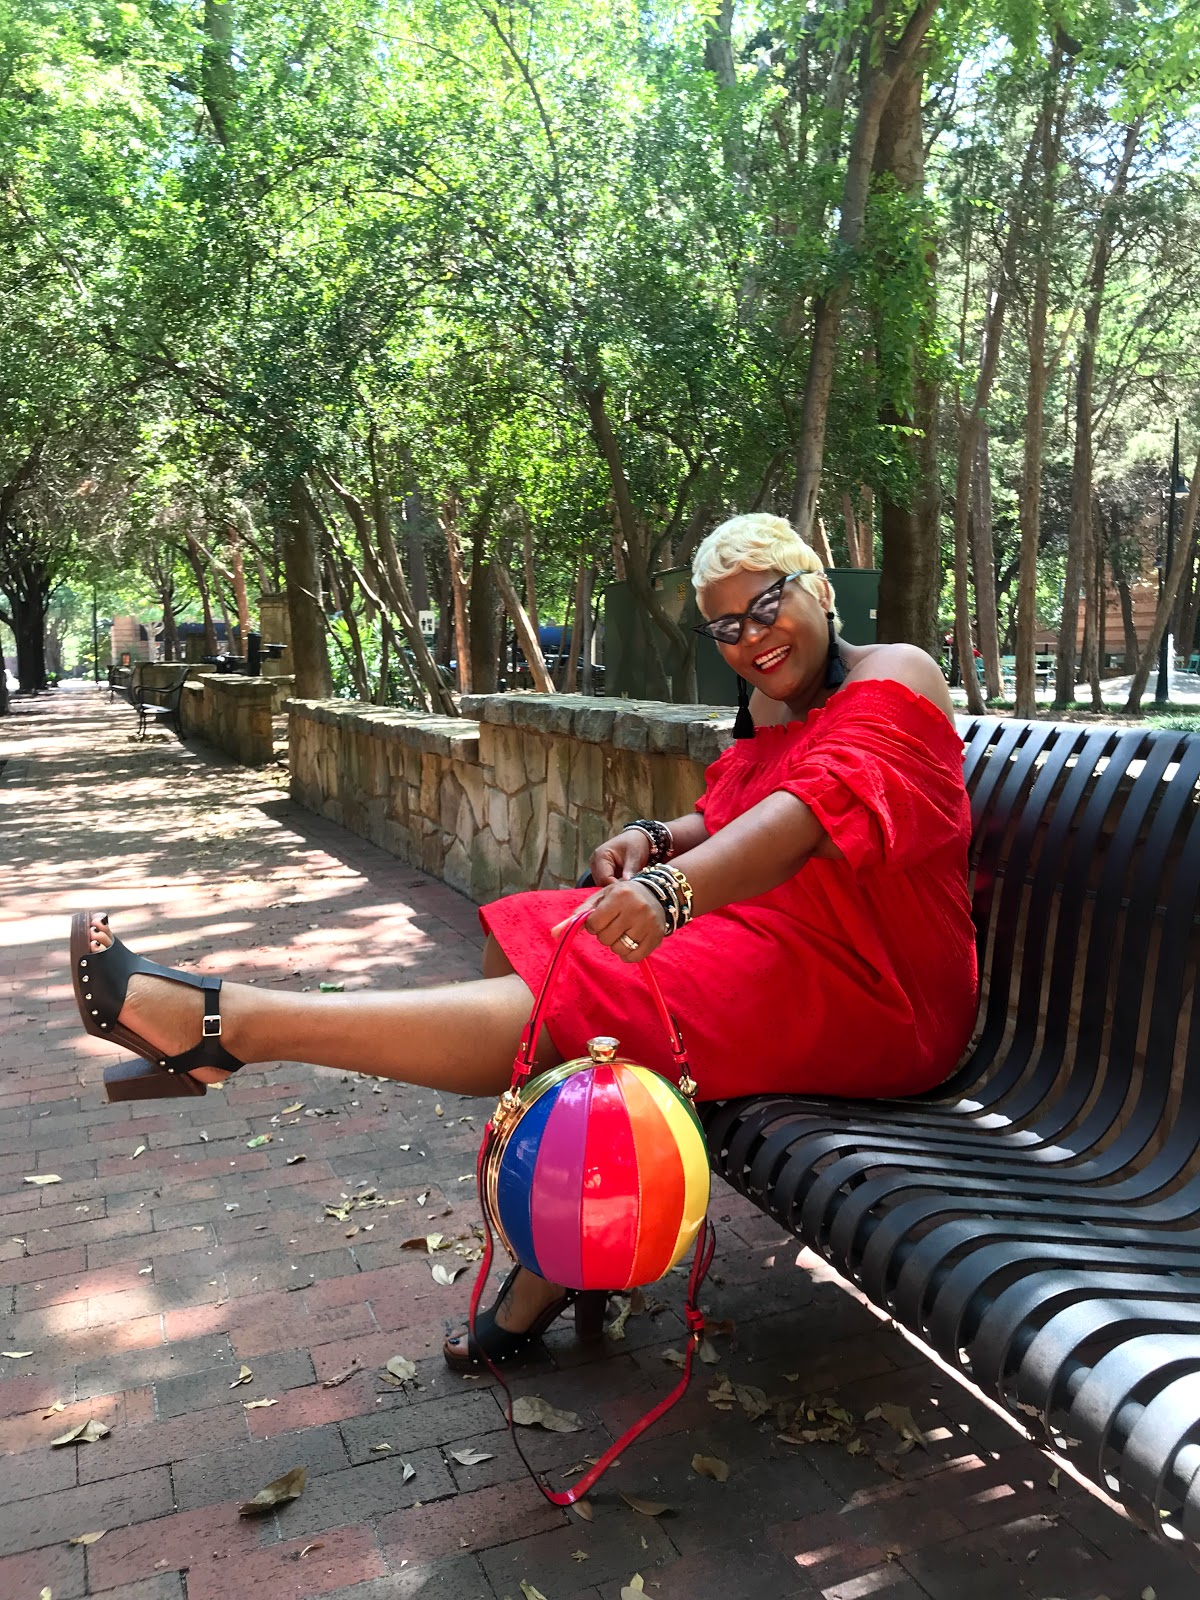 Image: Tangie Bell sharing her outfit deets in a red dress from H&M. Seen first on Bits and Babbles blog. Also talks about the heat and Cooter Brown meanings. Fun post by Tangie Bell